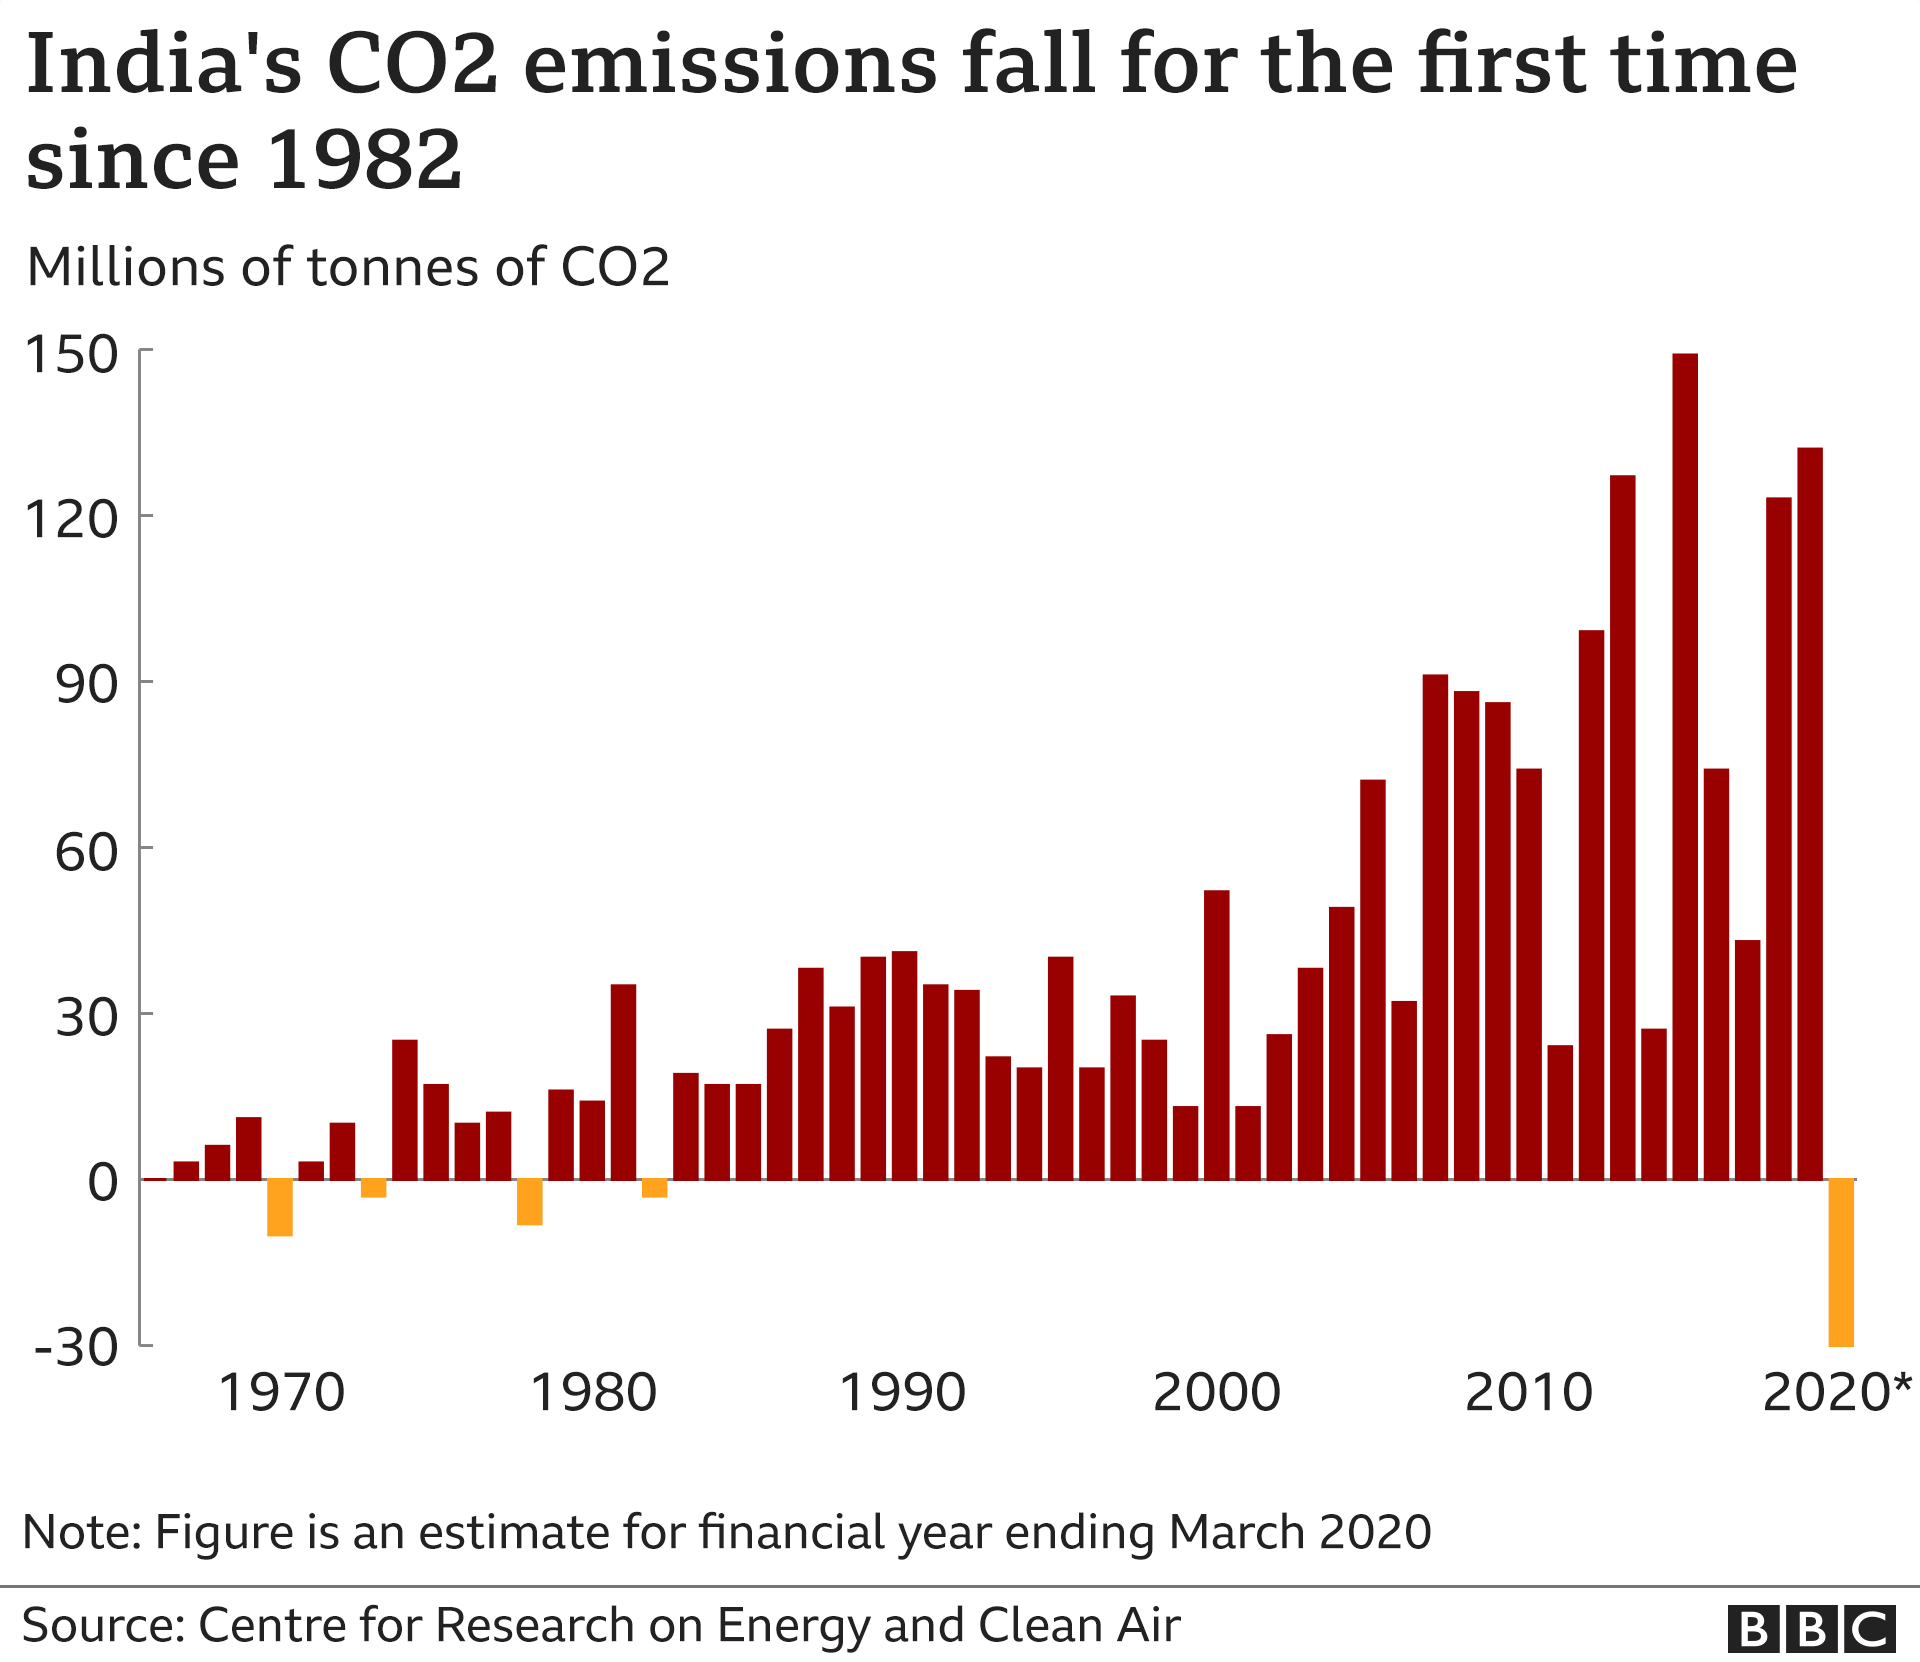 India's carbon emissions fall for first time in four decades - BBC News